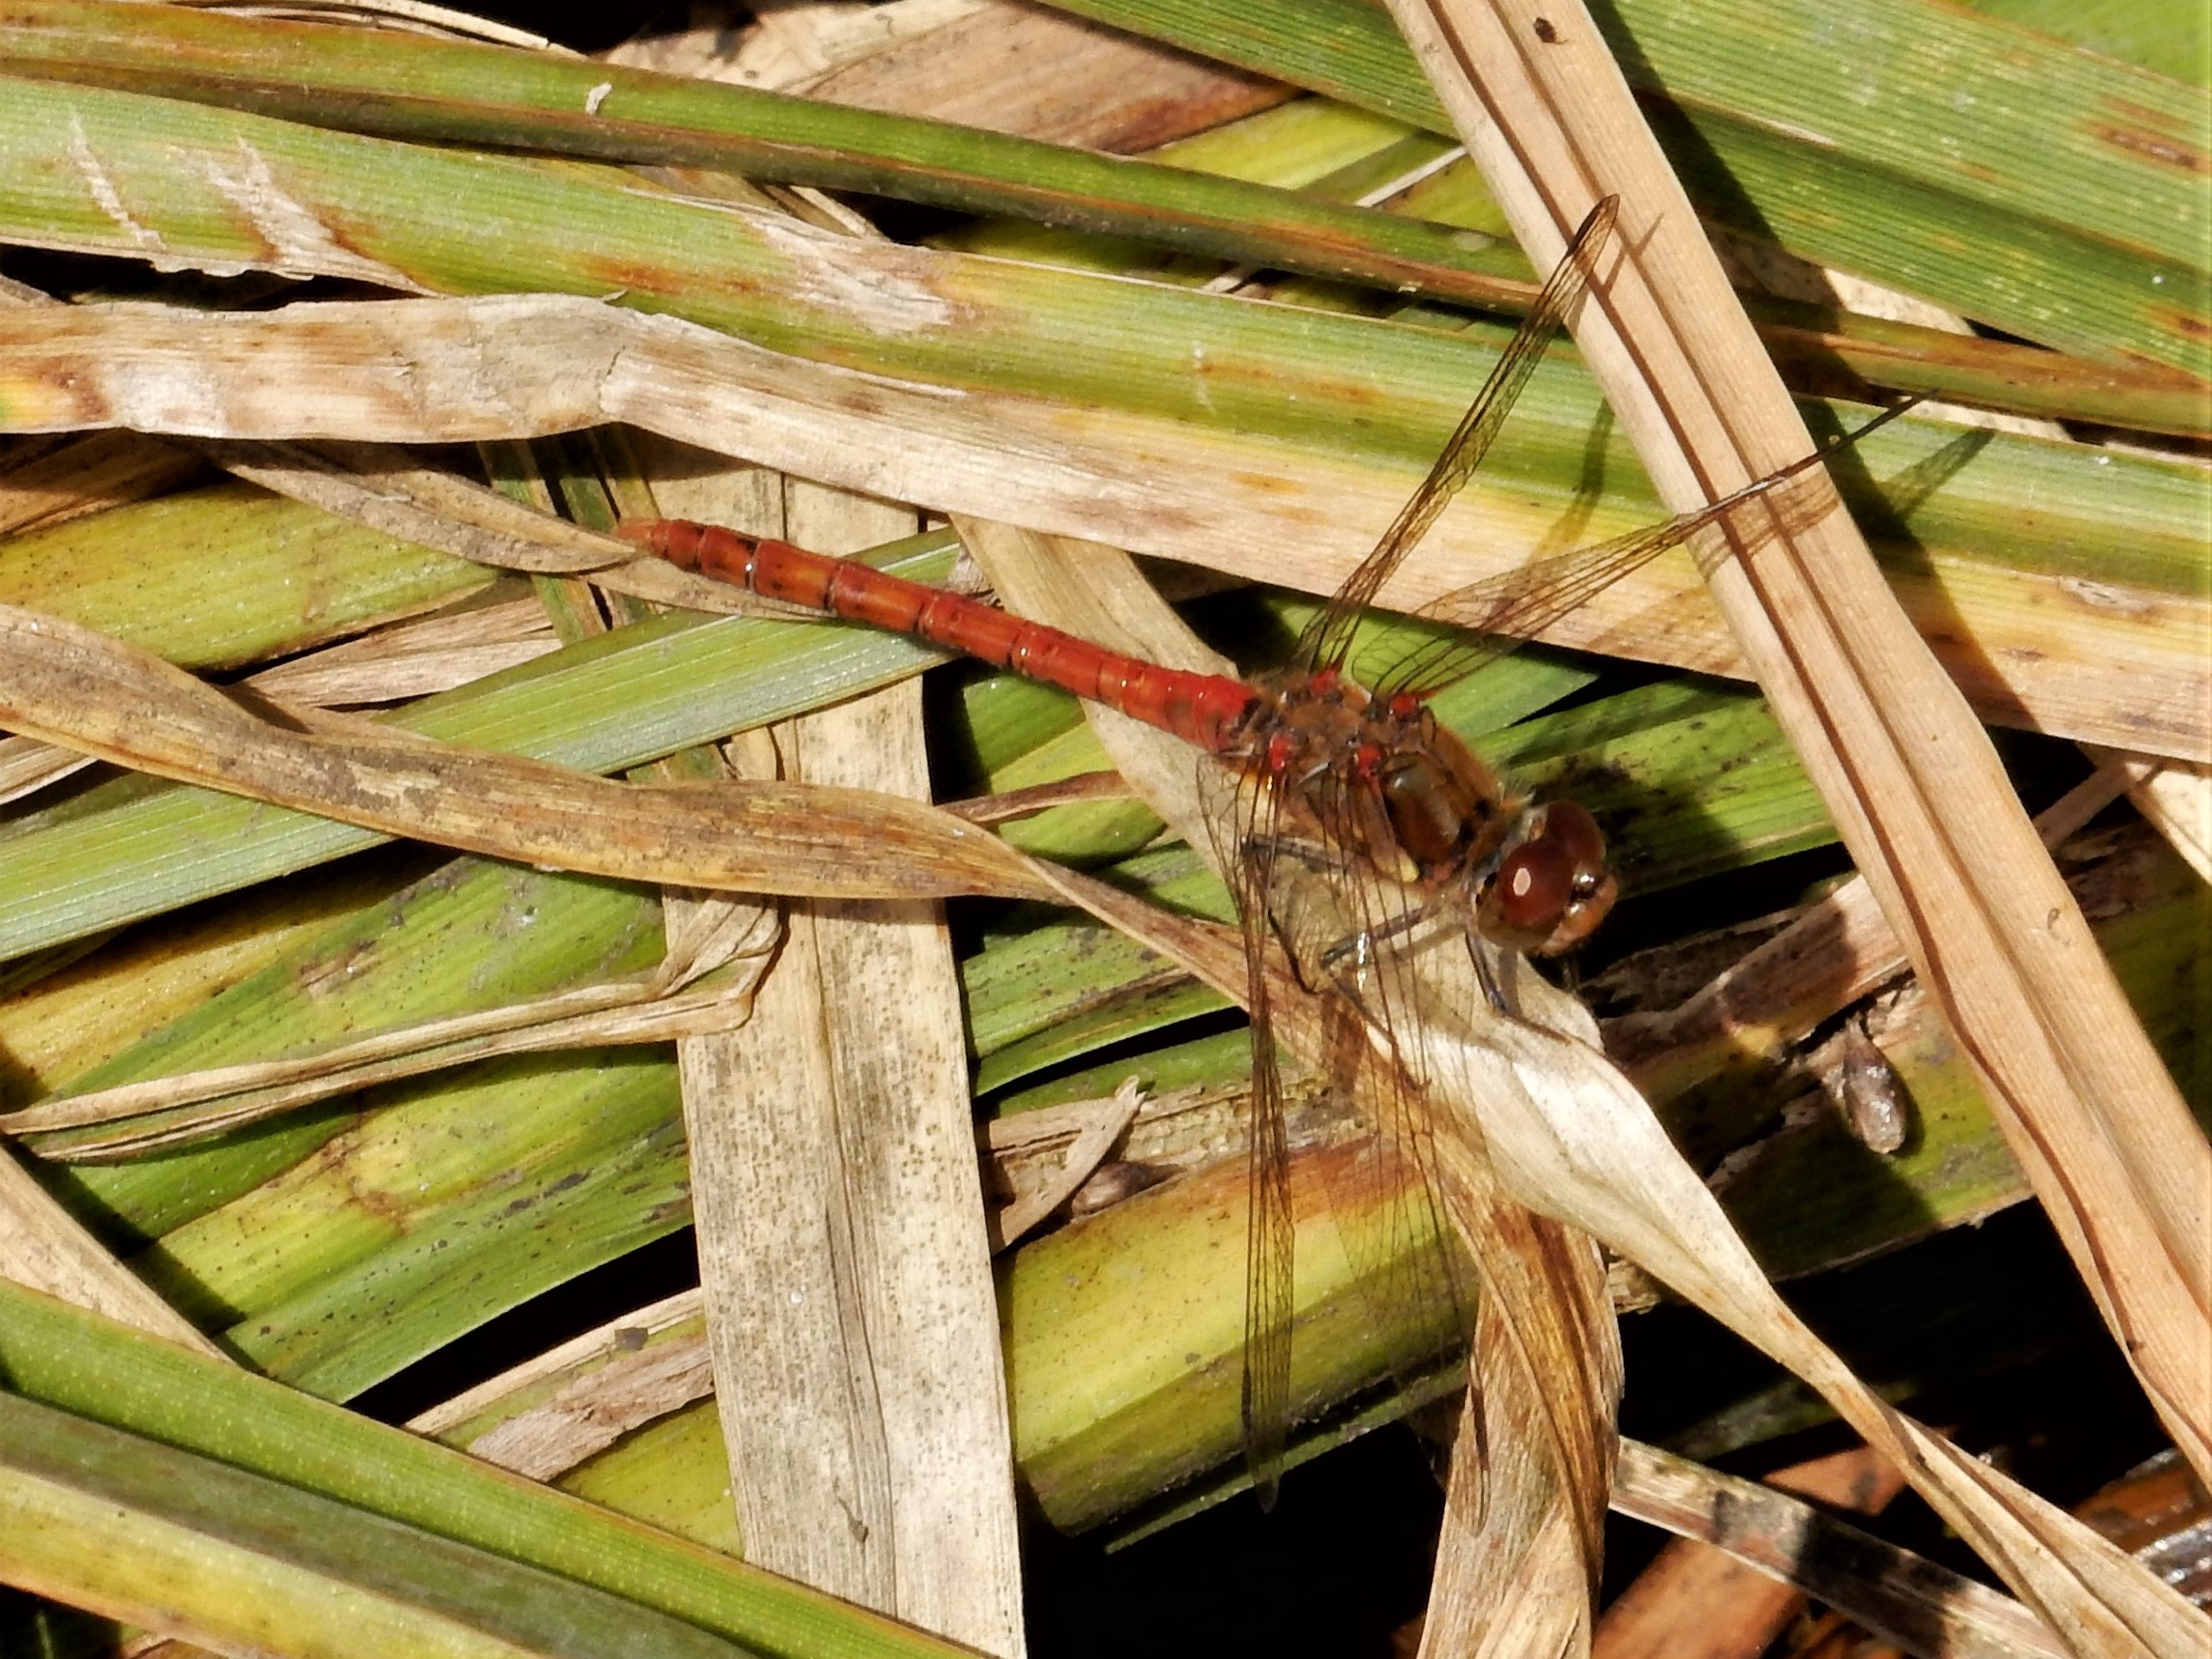 The male common darter dragonfly is long, thin and bright red.